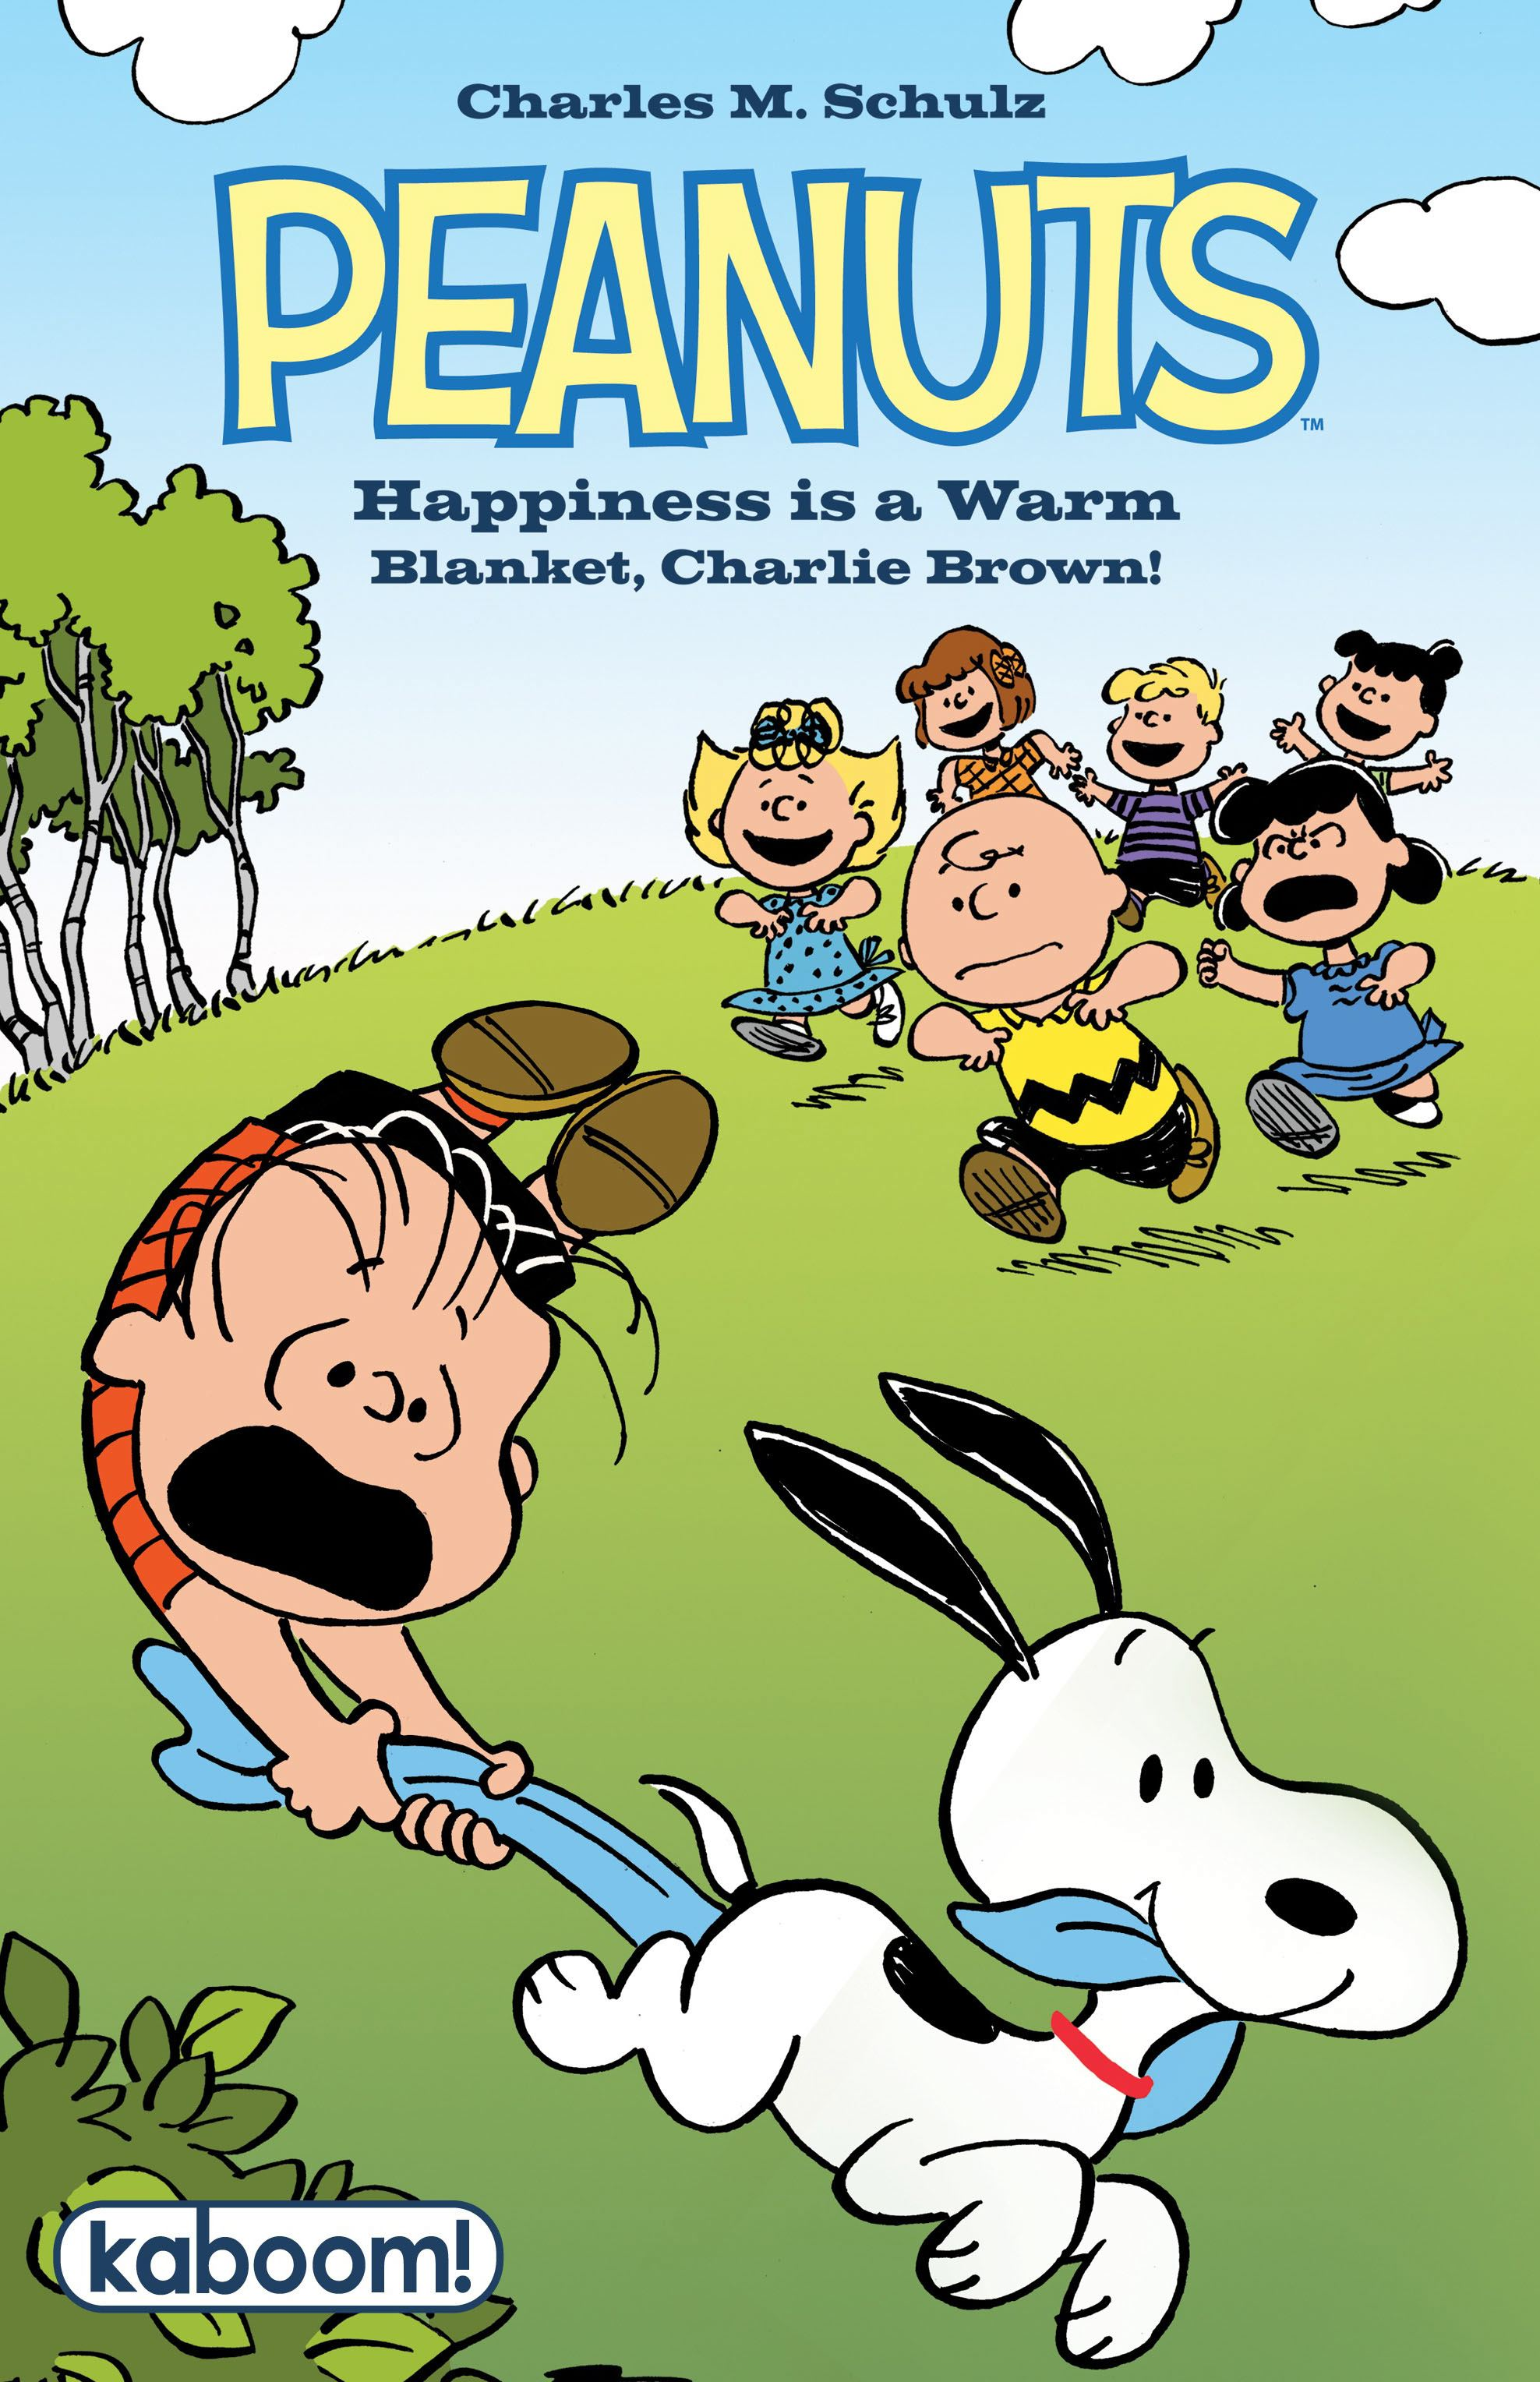 Peanuts happiness is a warm blanket charlie 9781608866816 hr